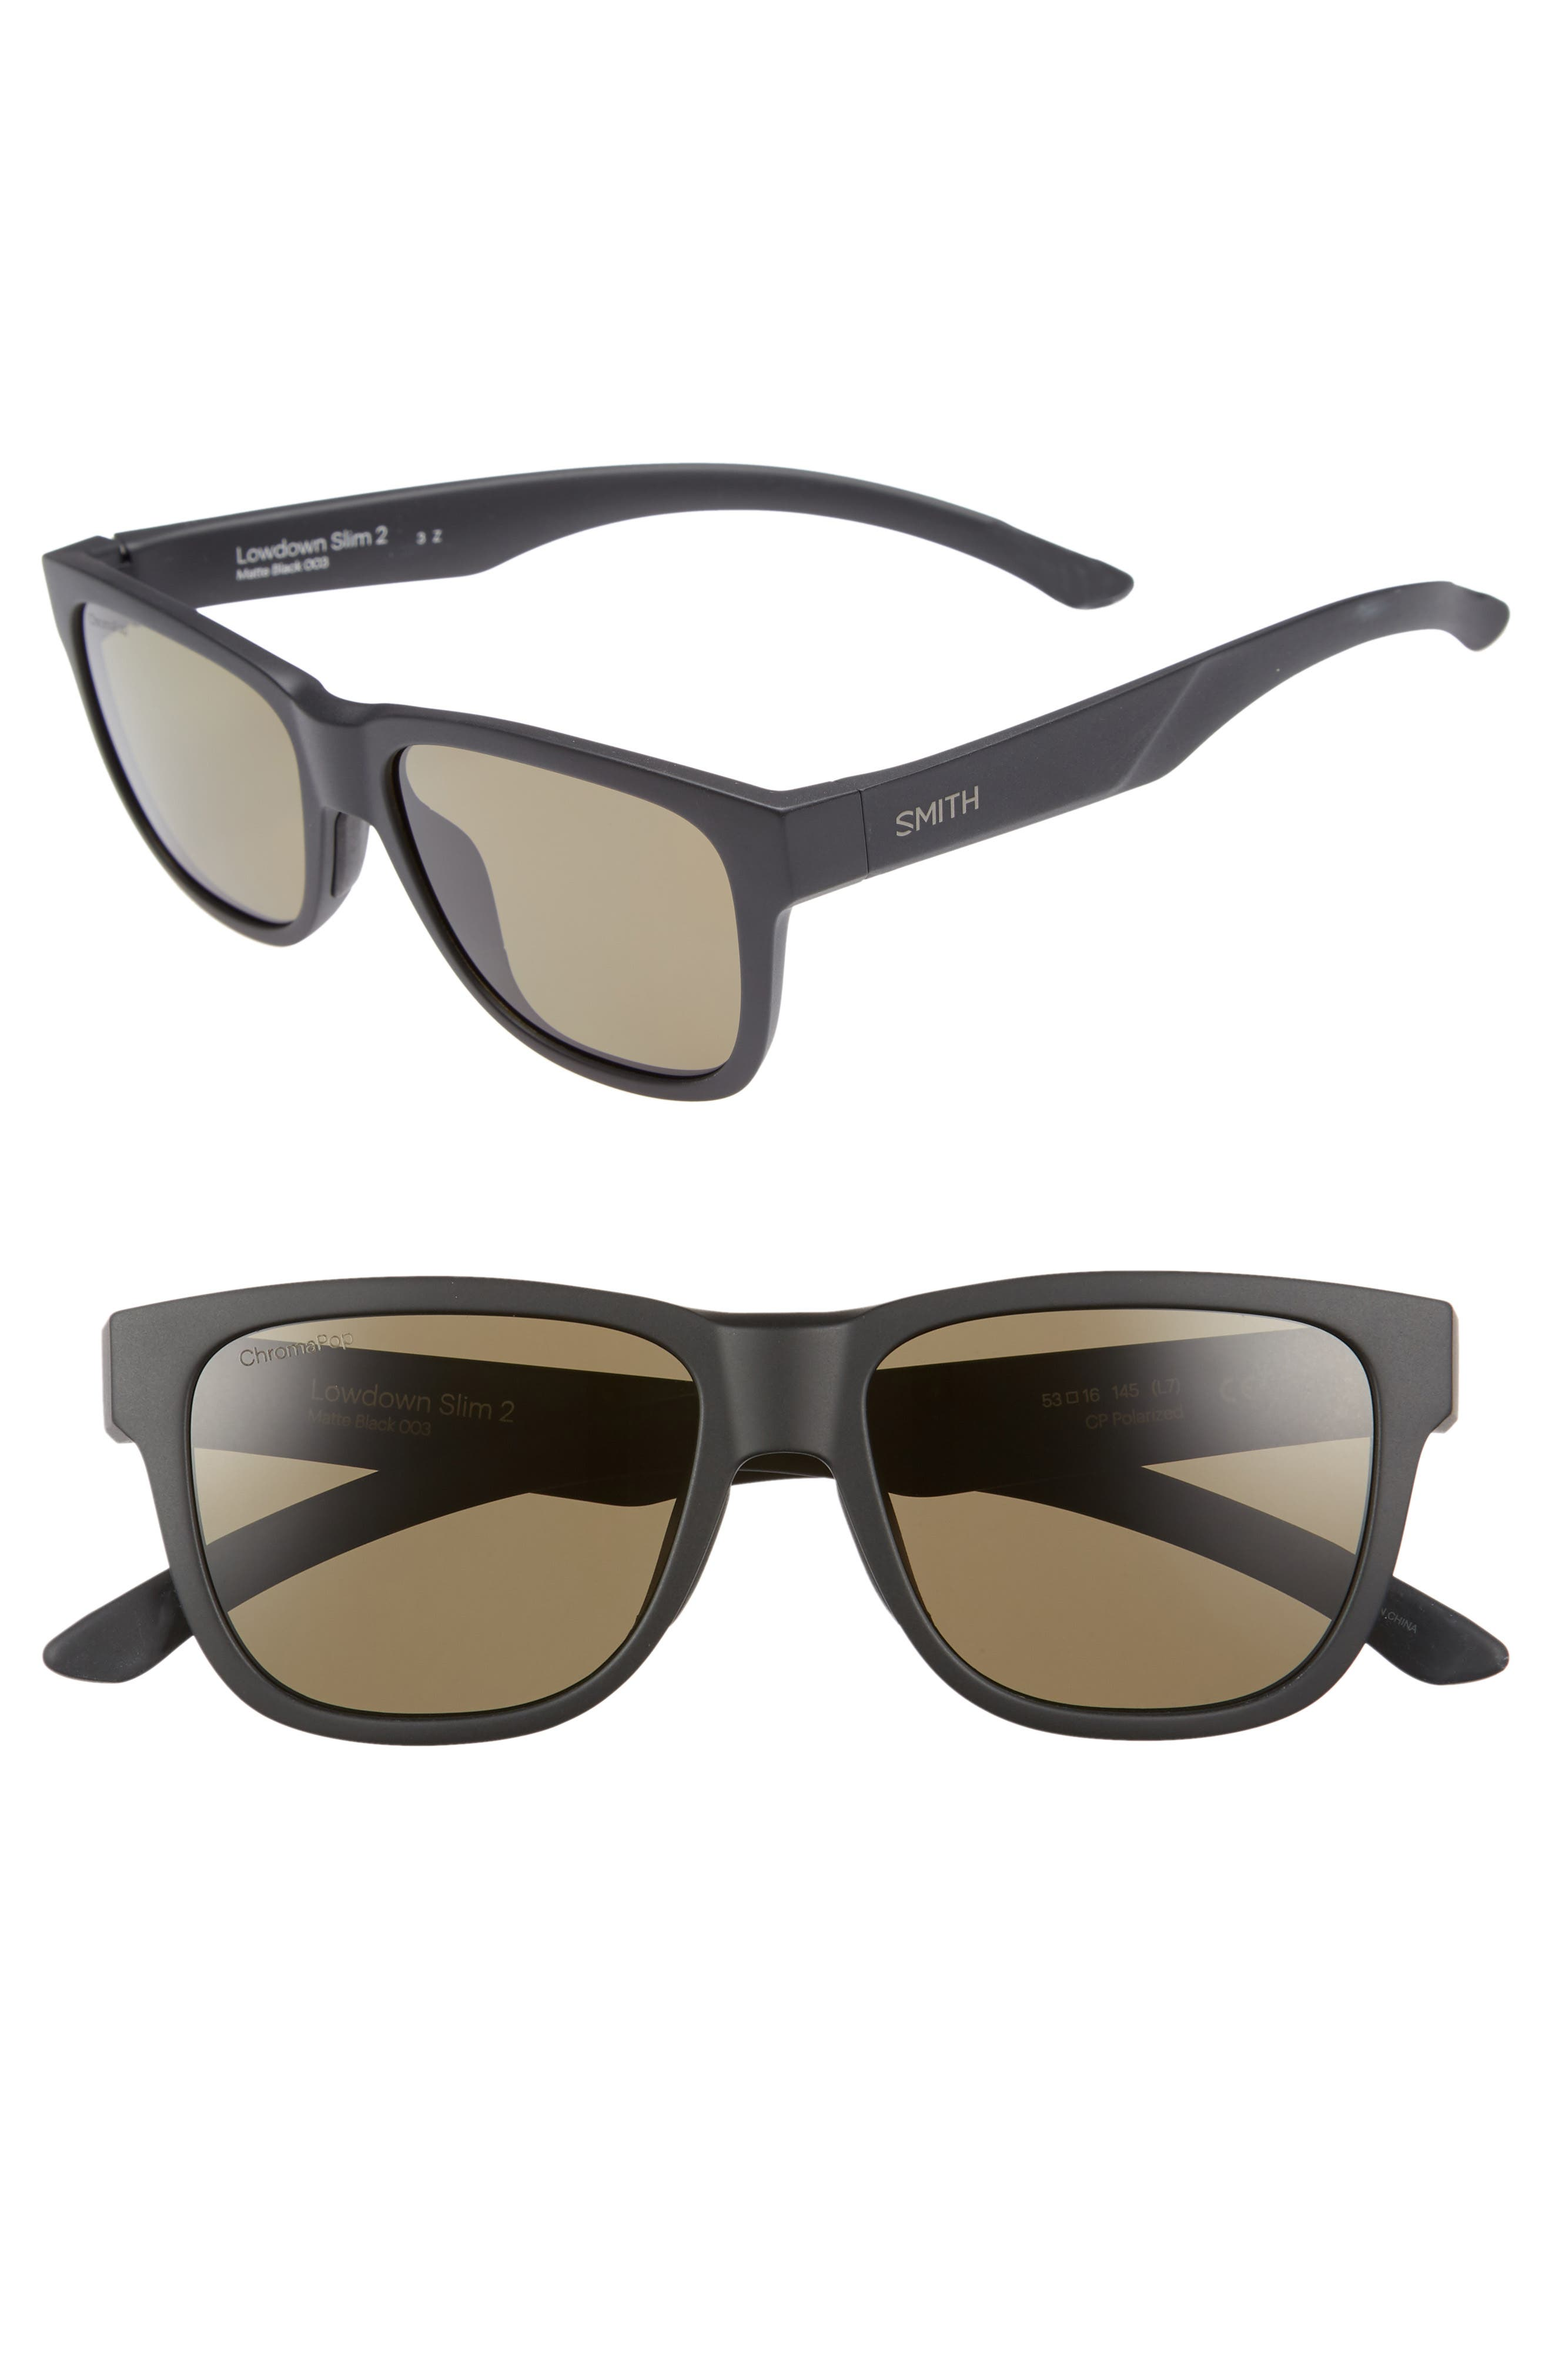 SMITH LOWDOWN SLIM 2 53MM CHROMAPOP(TM) SQUARE SUNGLASSES - MATTE BLACK